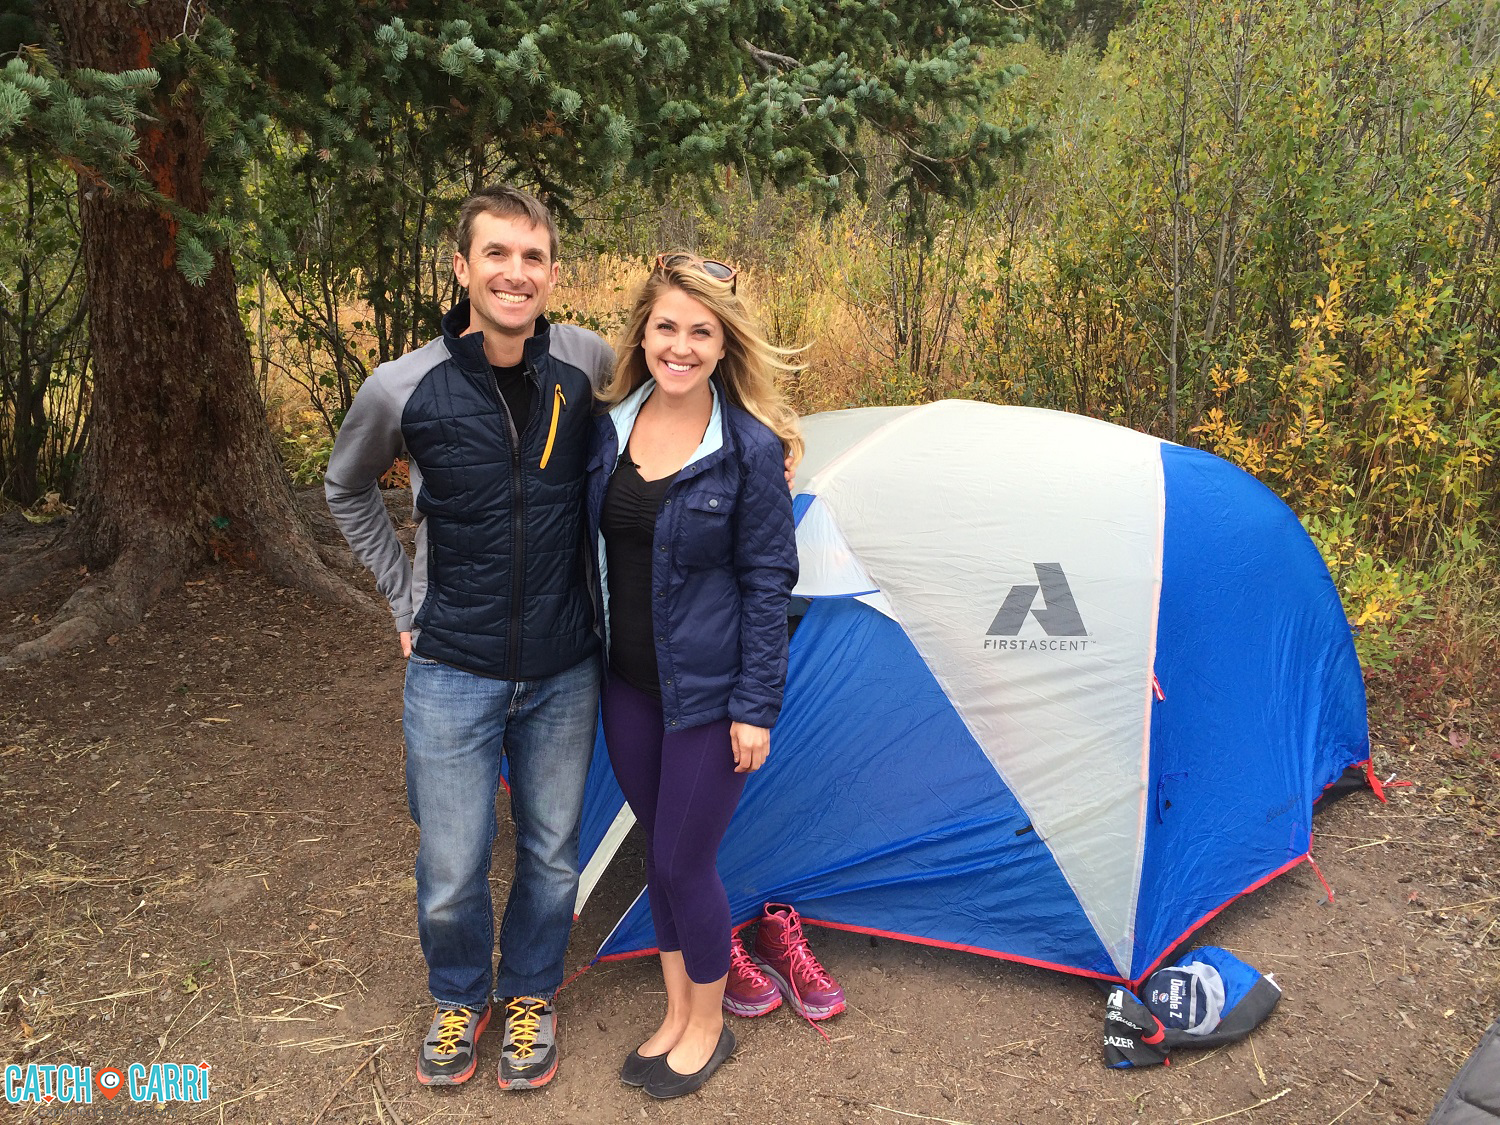 Review Best Camping Gear For Colorado Mountains Catch Carri Travel Guides Local Reviews